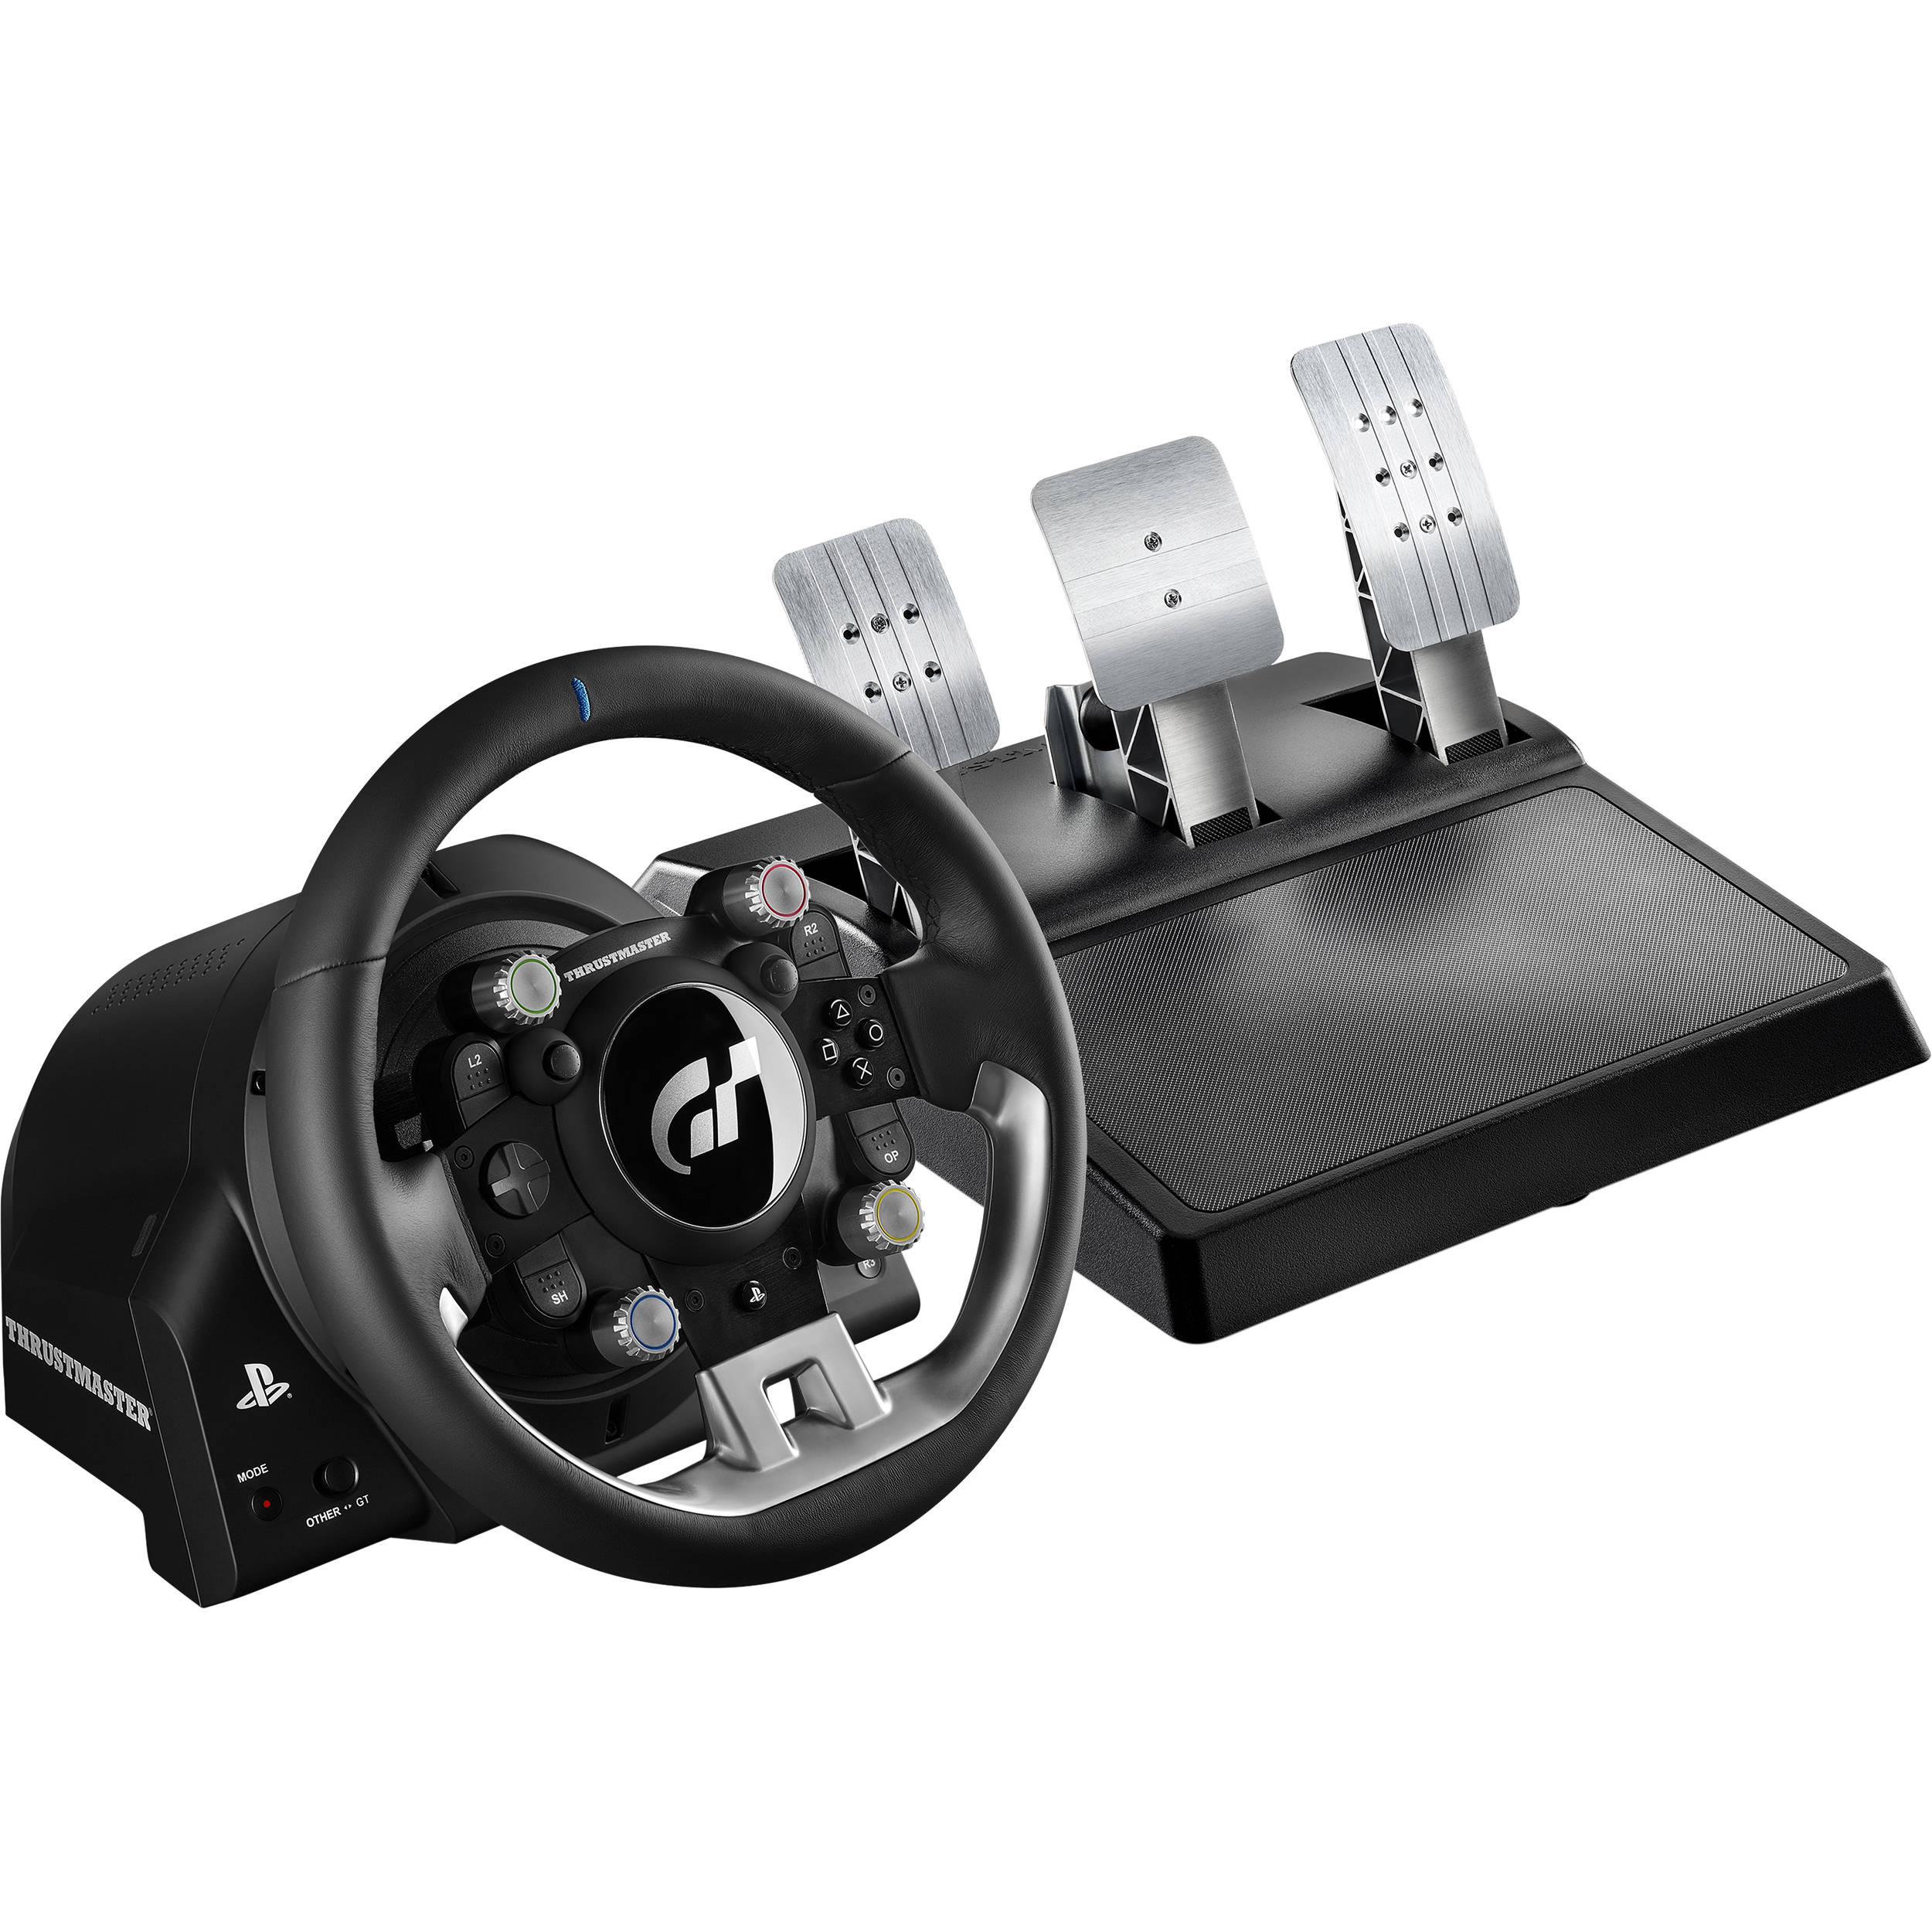 Thrustmaster T Gt Racing Wheel 4169087 Bh Photo Video Home Switches 4 Way